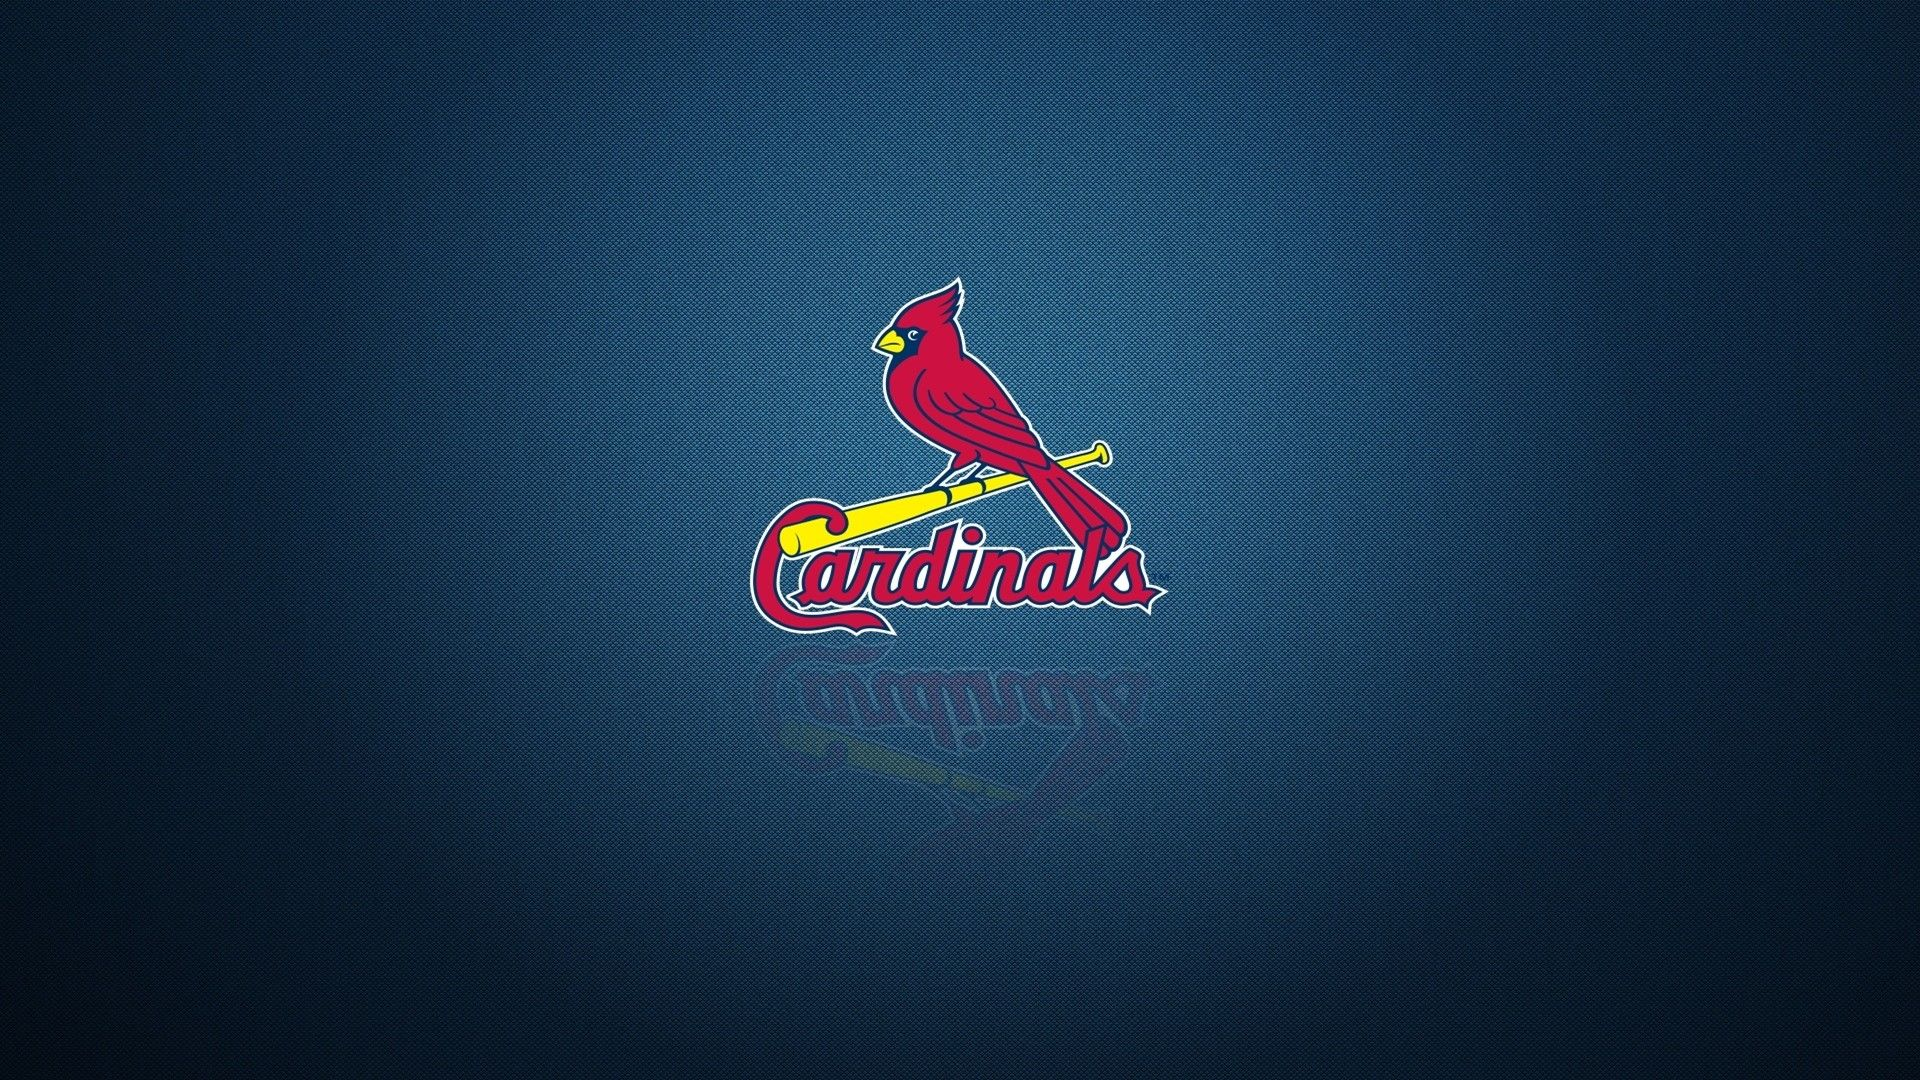 Cardinals Baseball Iphone Wallpapers Top Free Cardinals Baseball